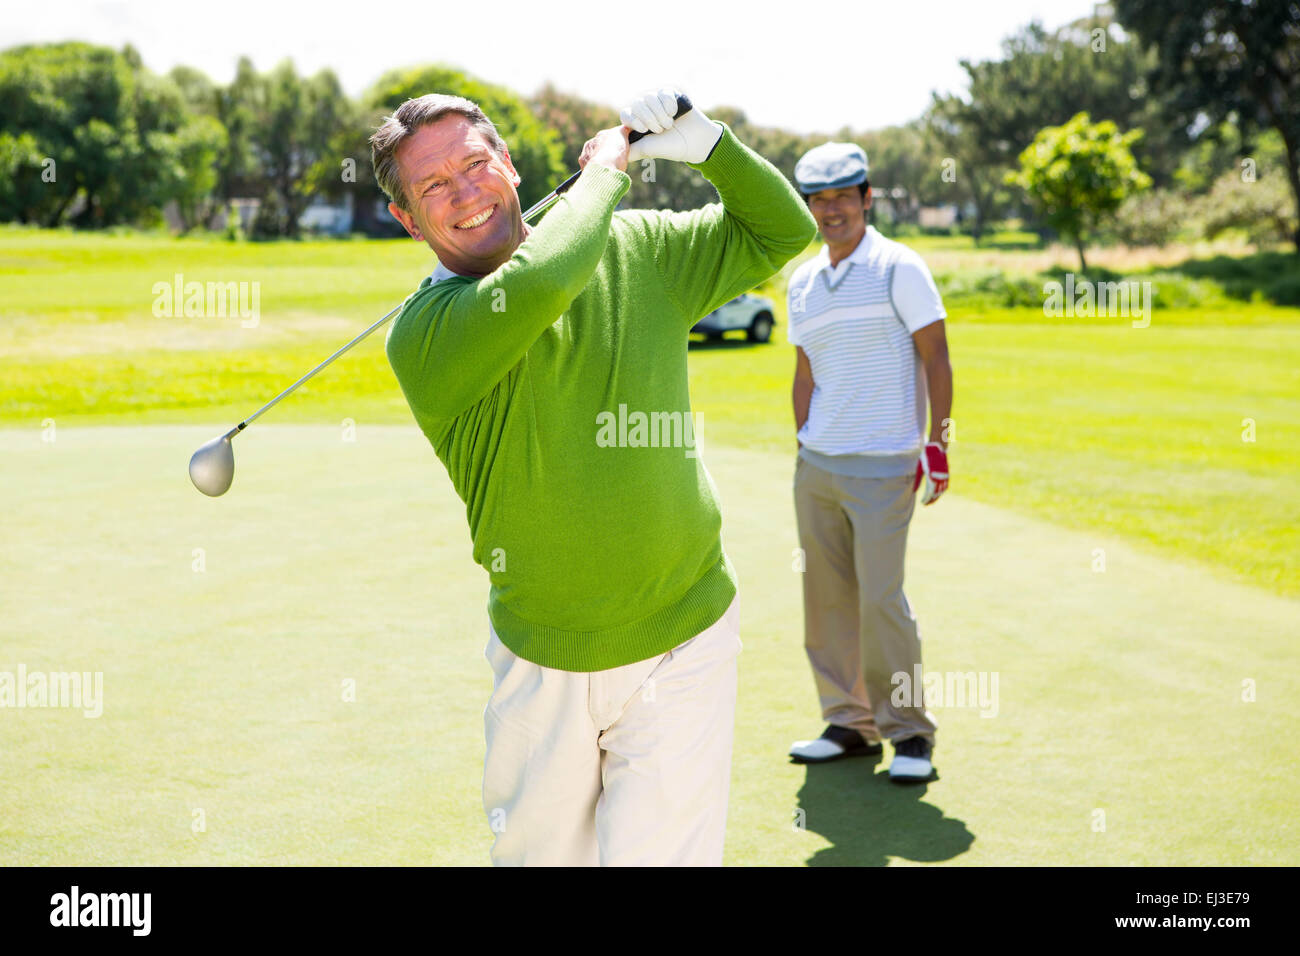 Golfing friends teeing off - Stock Image